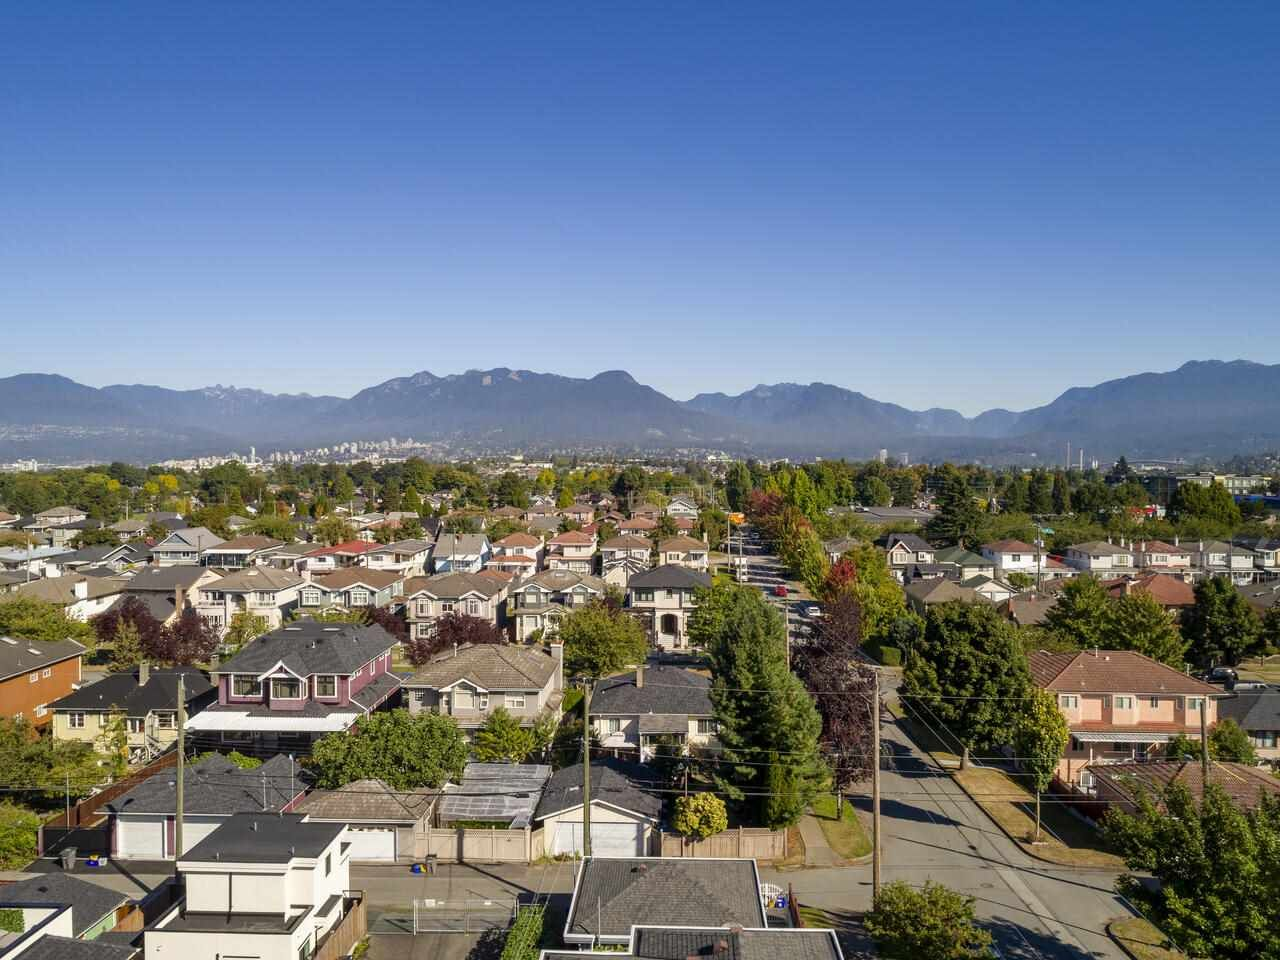 """Photo 5: Photos: 2796 E 4TH Avenue in Vancouver: Renfrew VE House for sale in """"Renfrew Heights"""" (Vancouver East)  : MLS®# R2496647"""